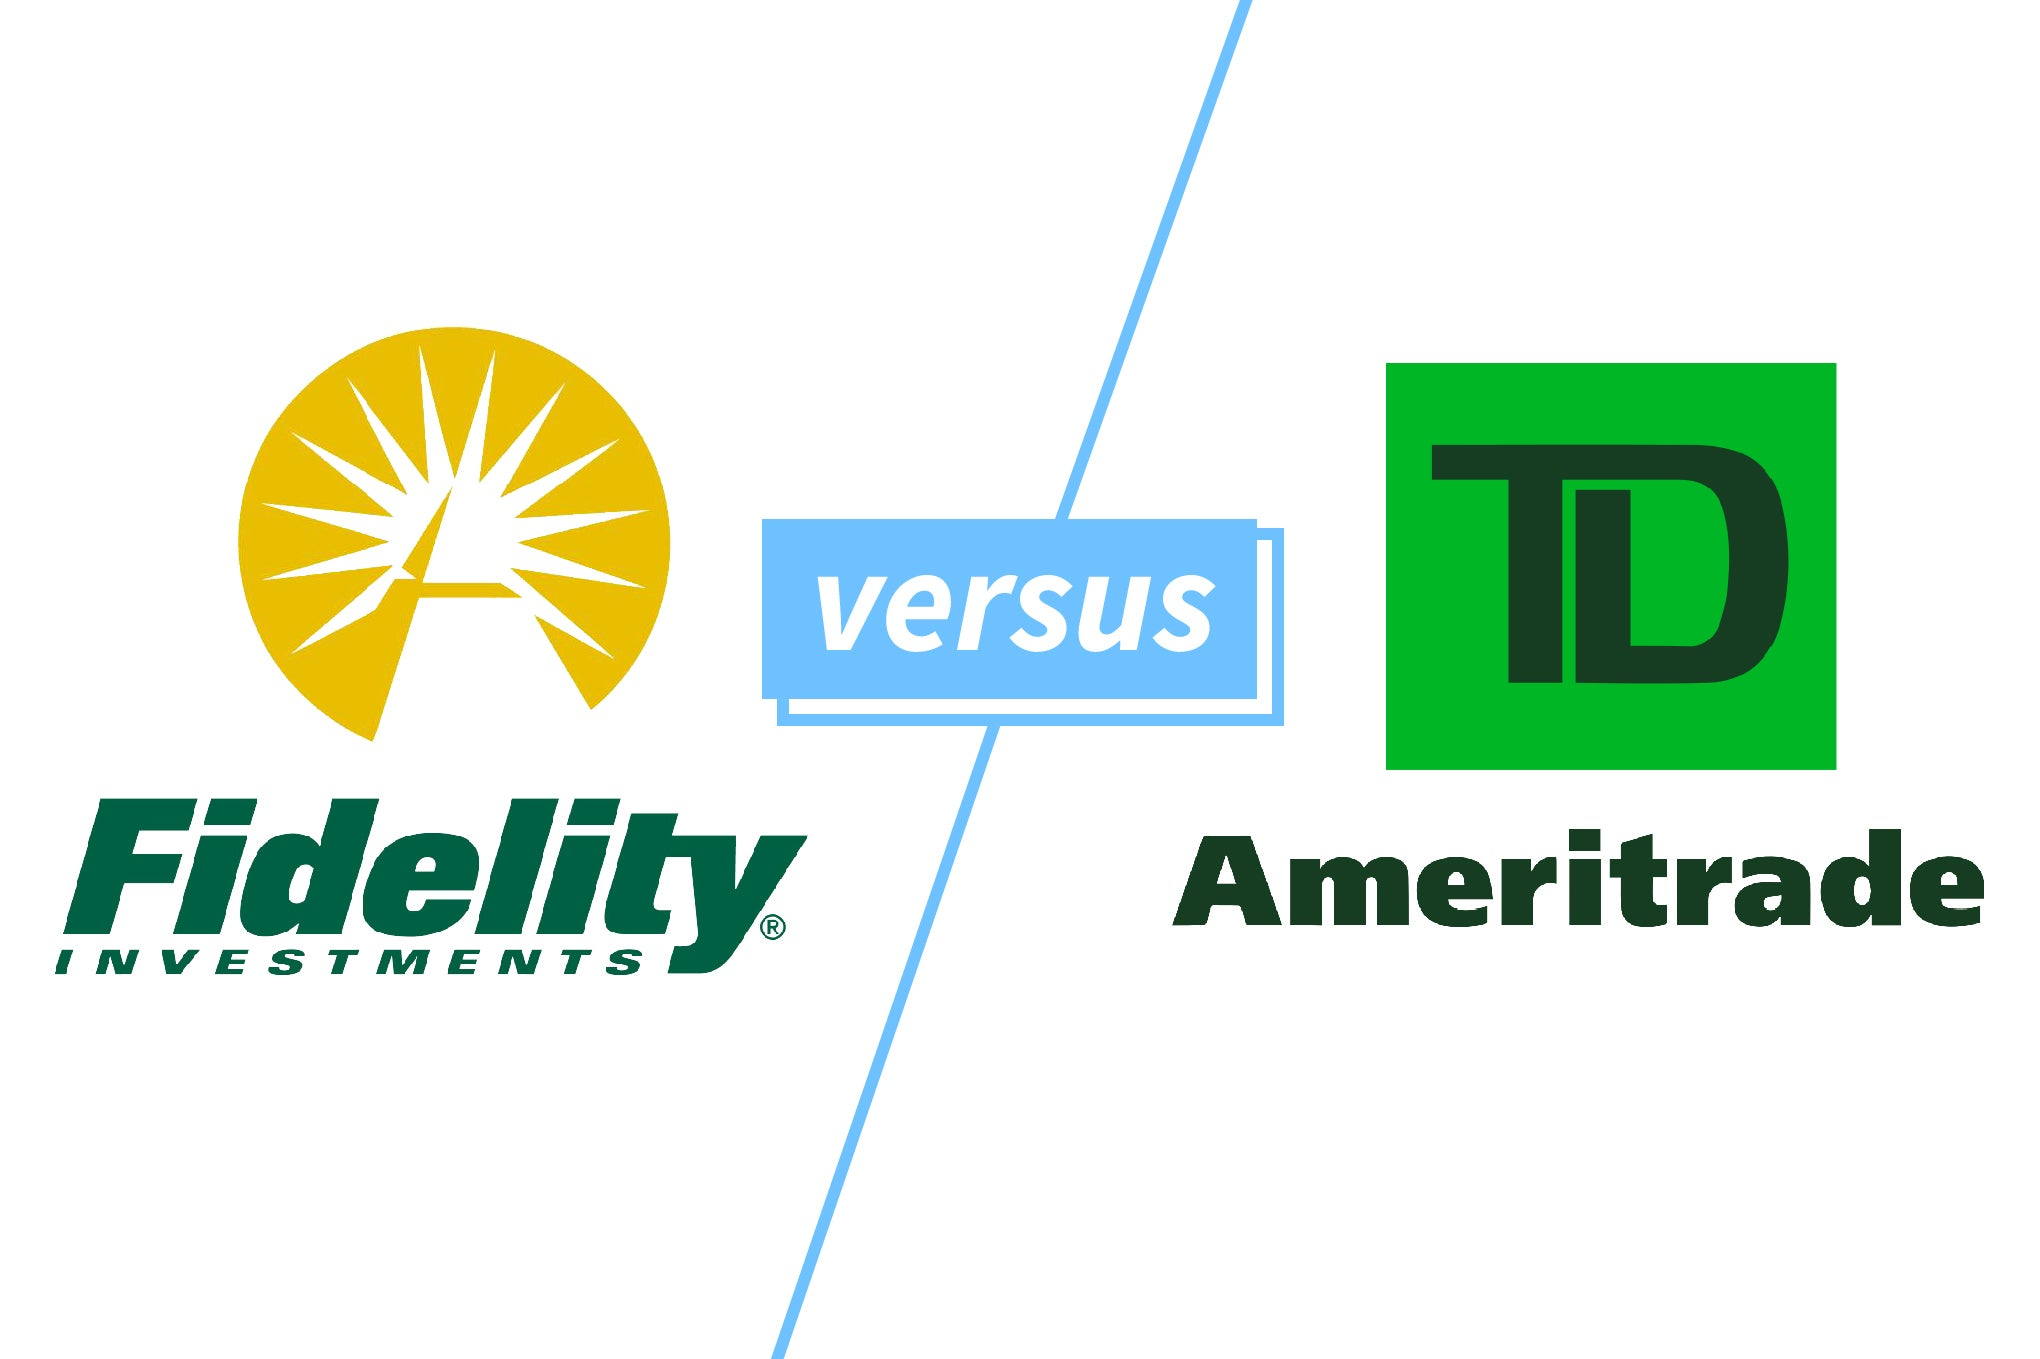 Better investment options td ameritrade or fidelity